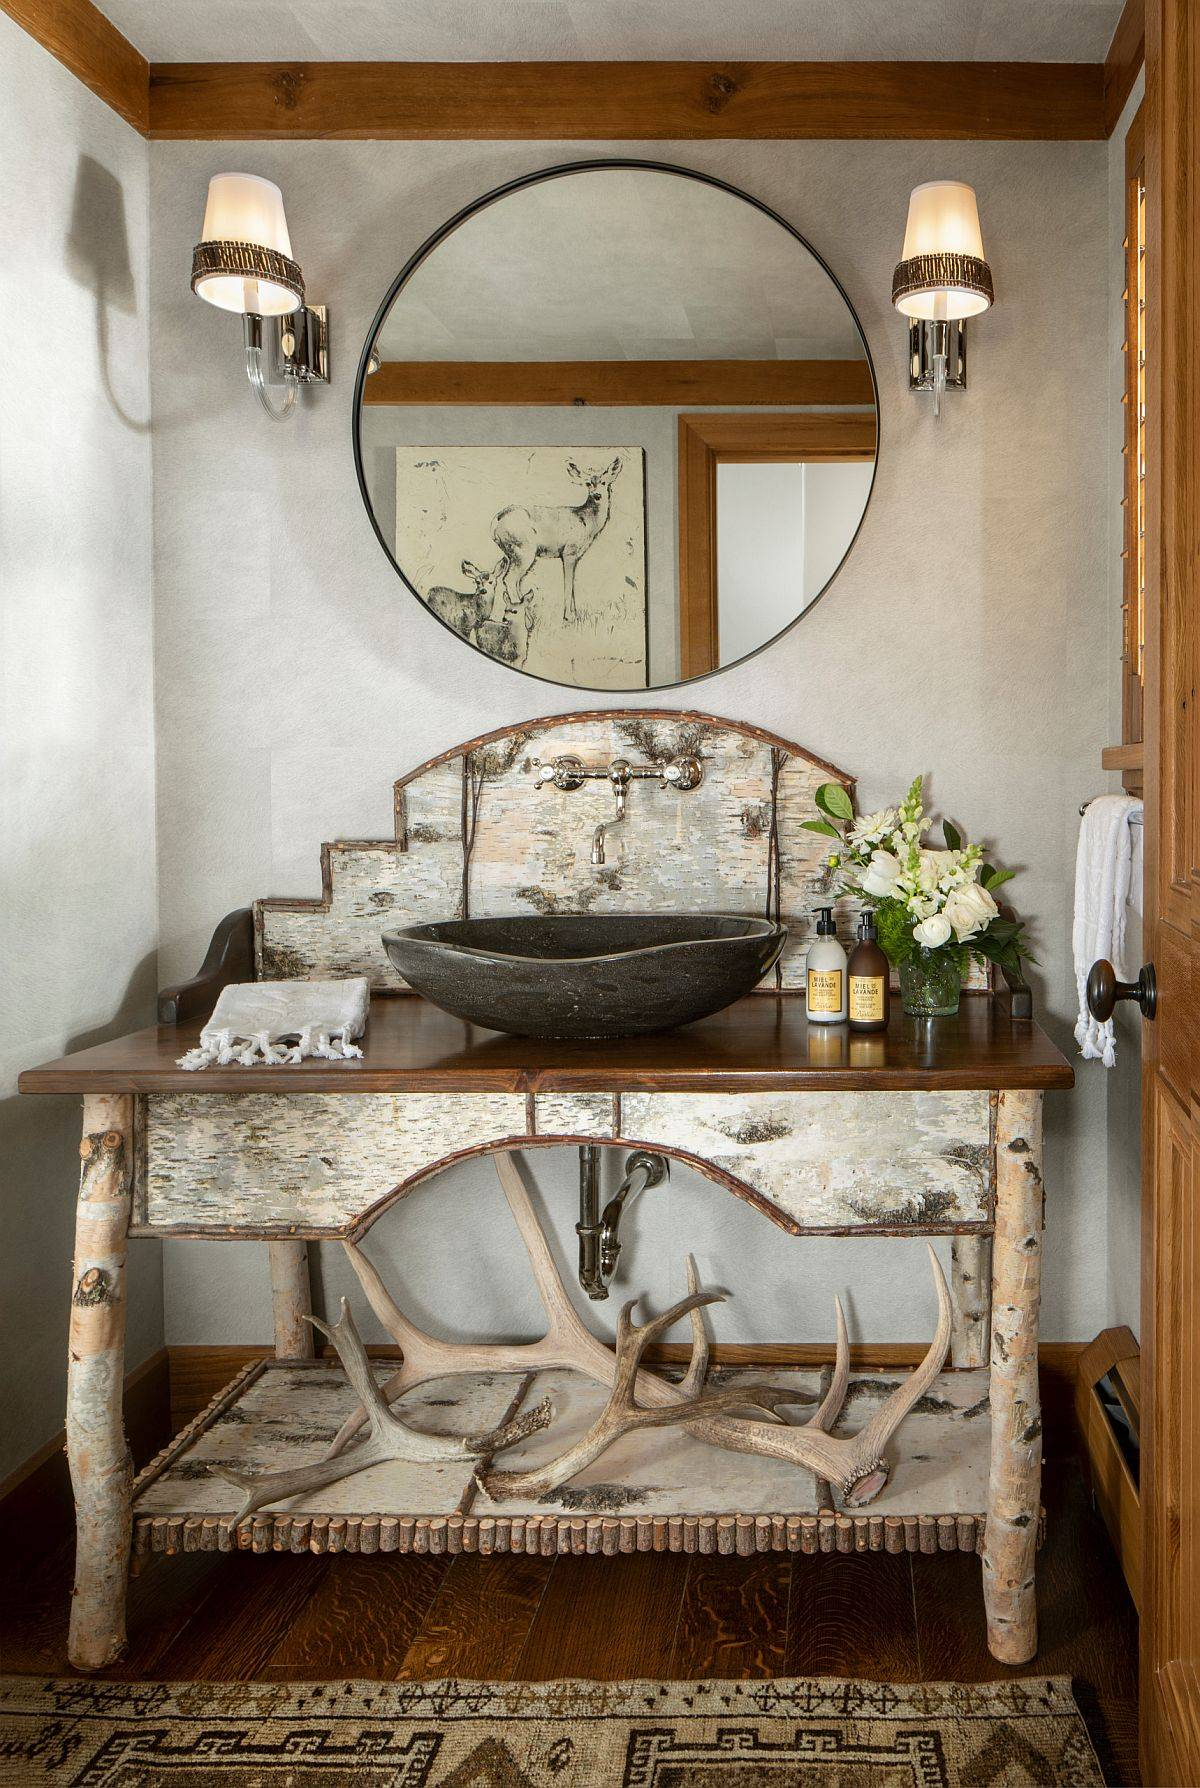 Discover-your-personal-style-in-the-dashing-modern-rustic-powder-room-86049